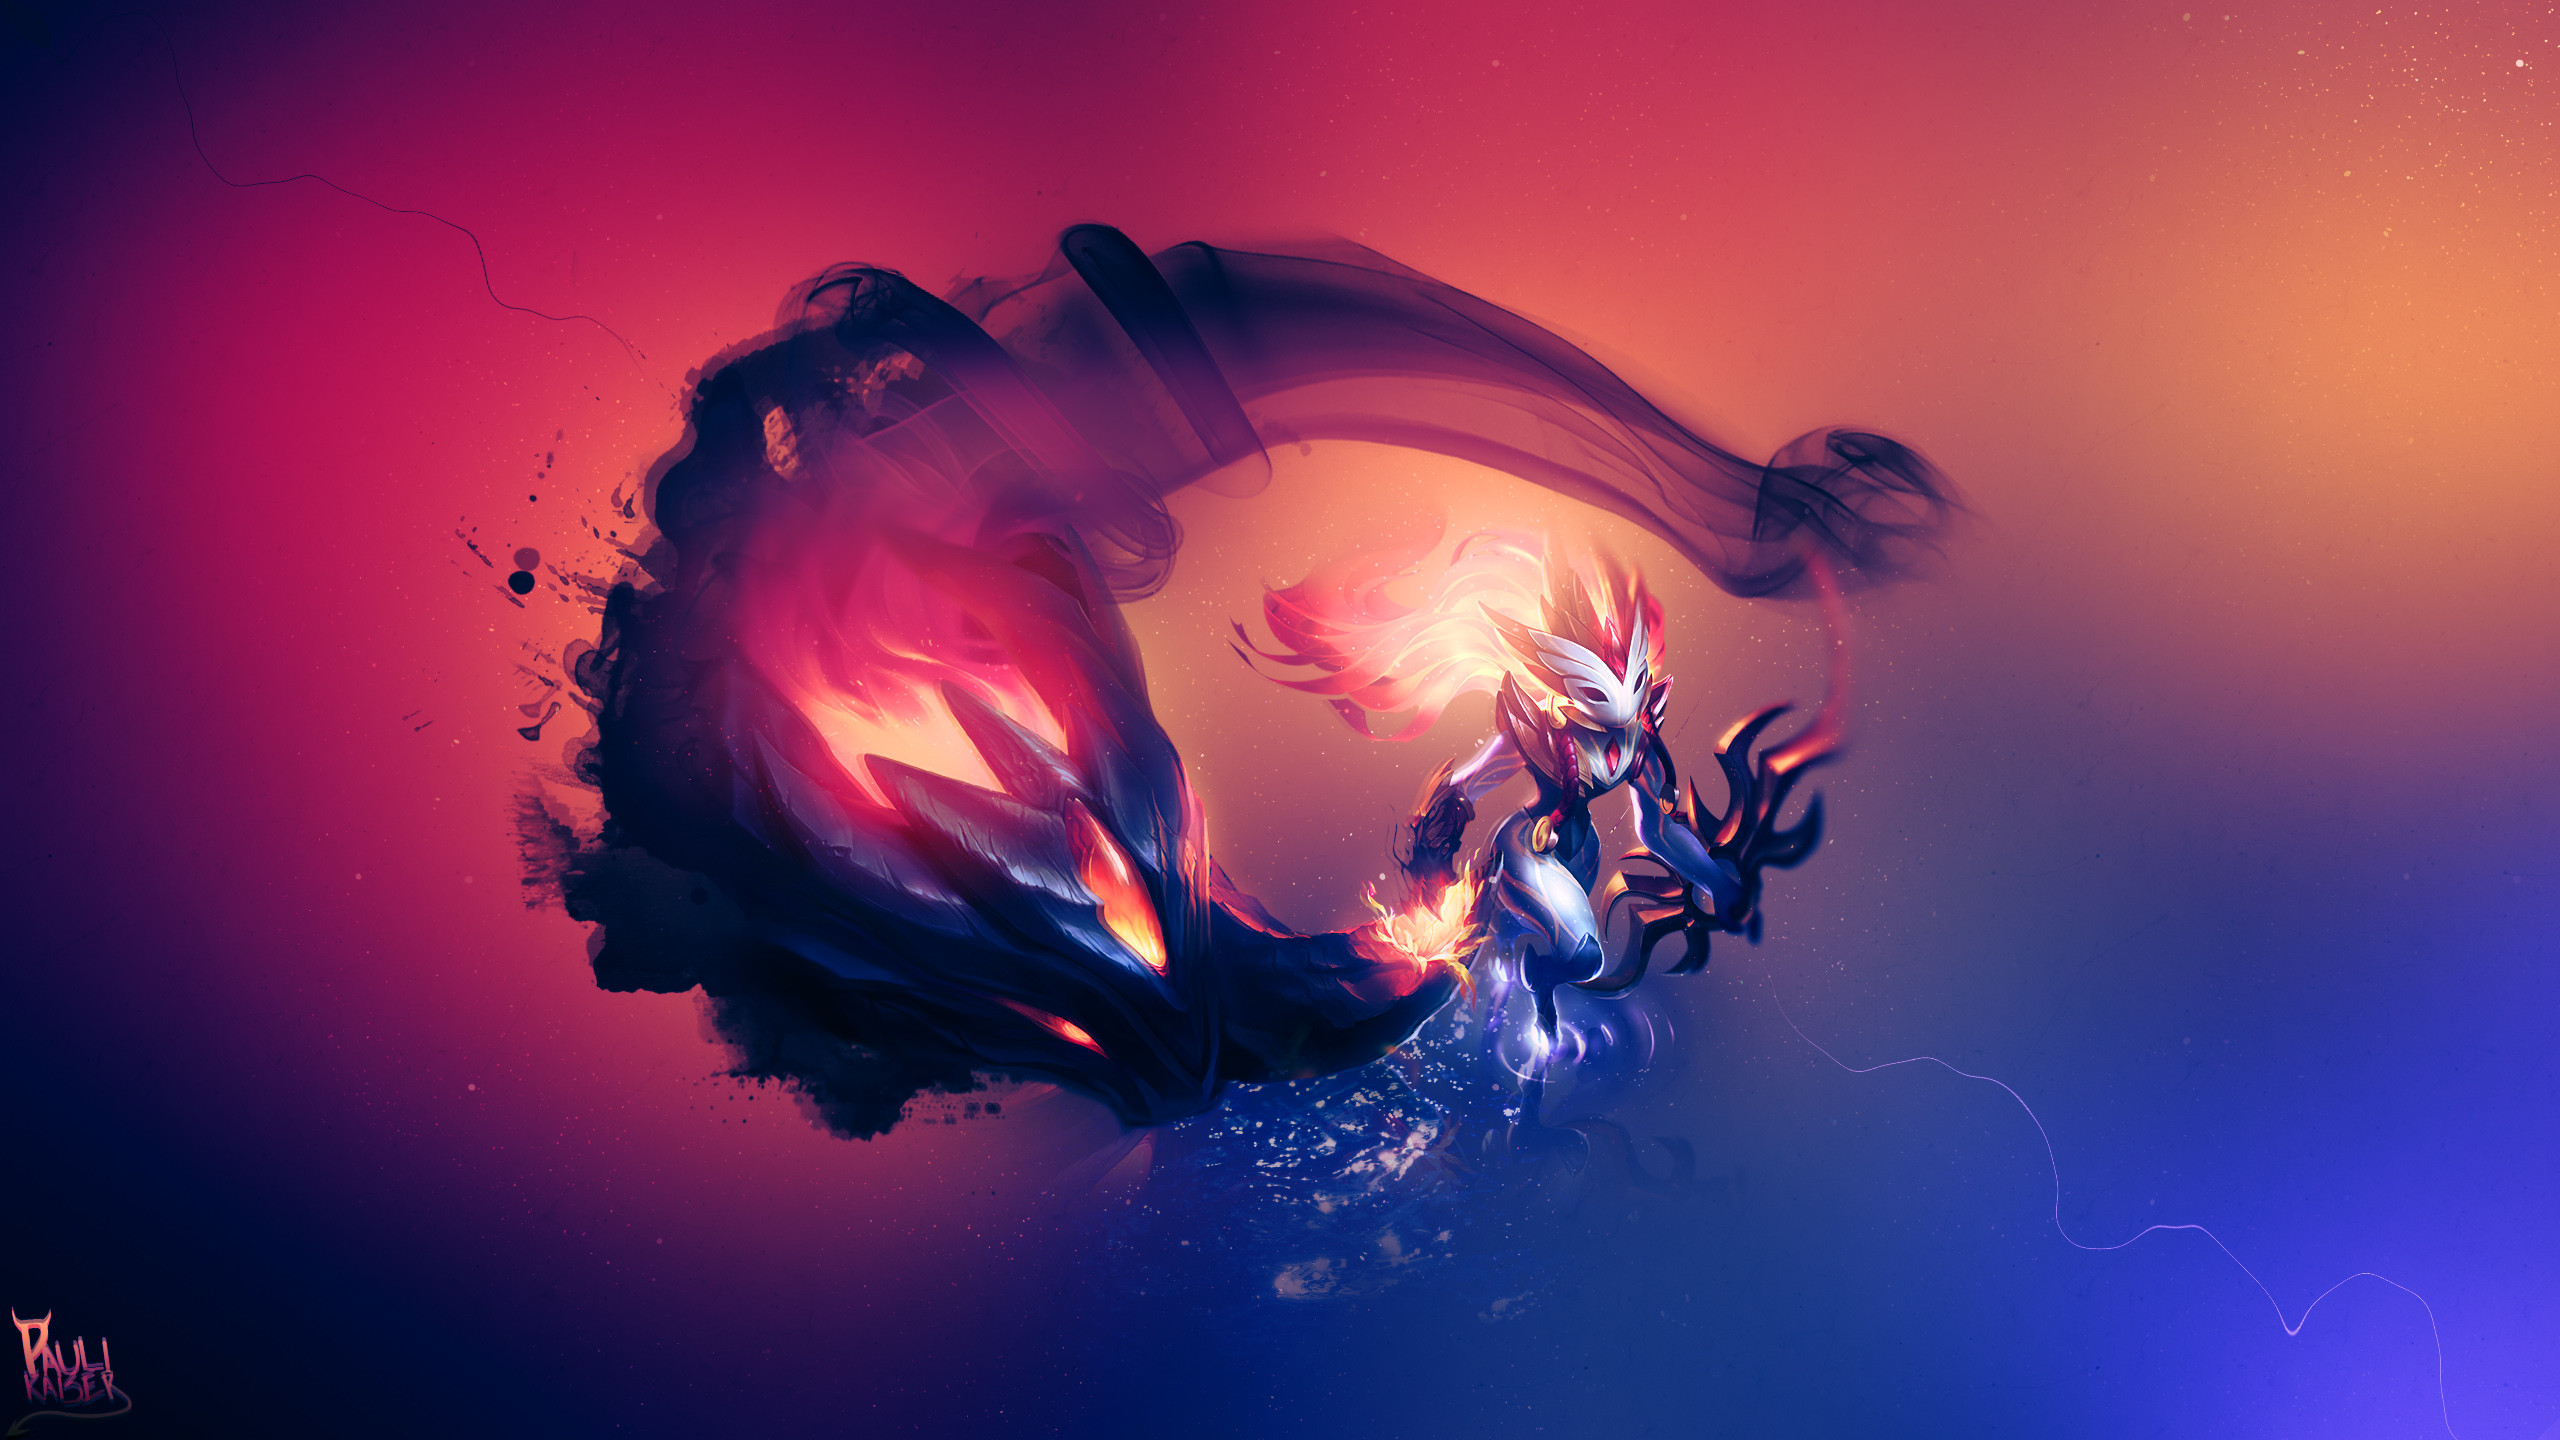 Hd Wallpapers Artworks For League Of: Kindred LoL Wallpaper (79+ Images